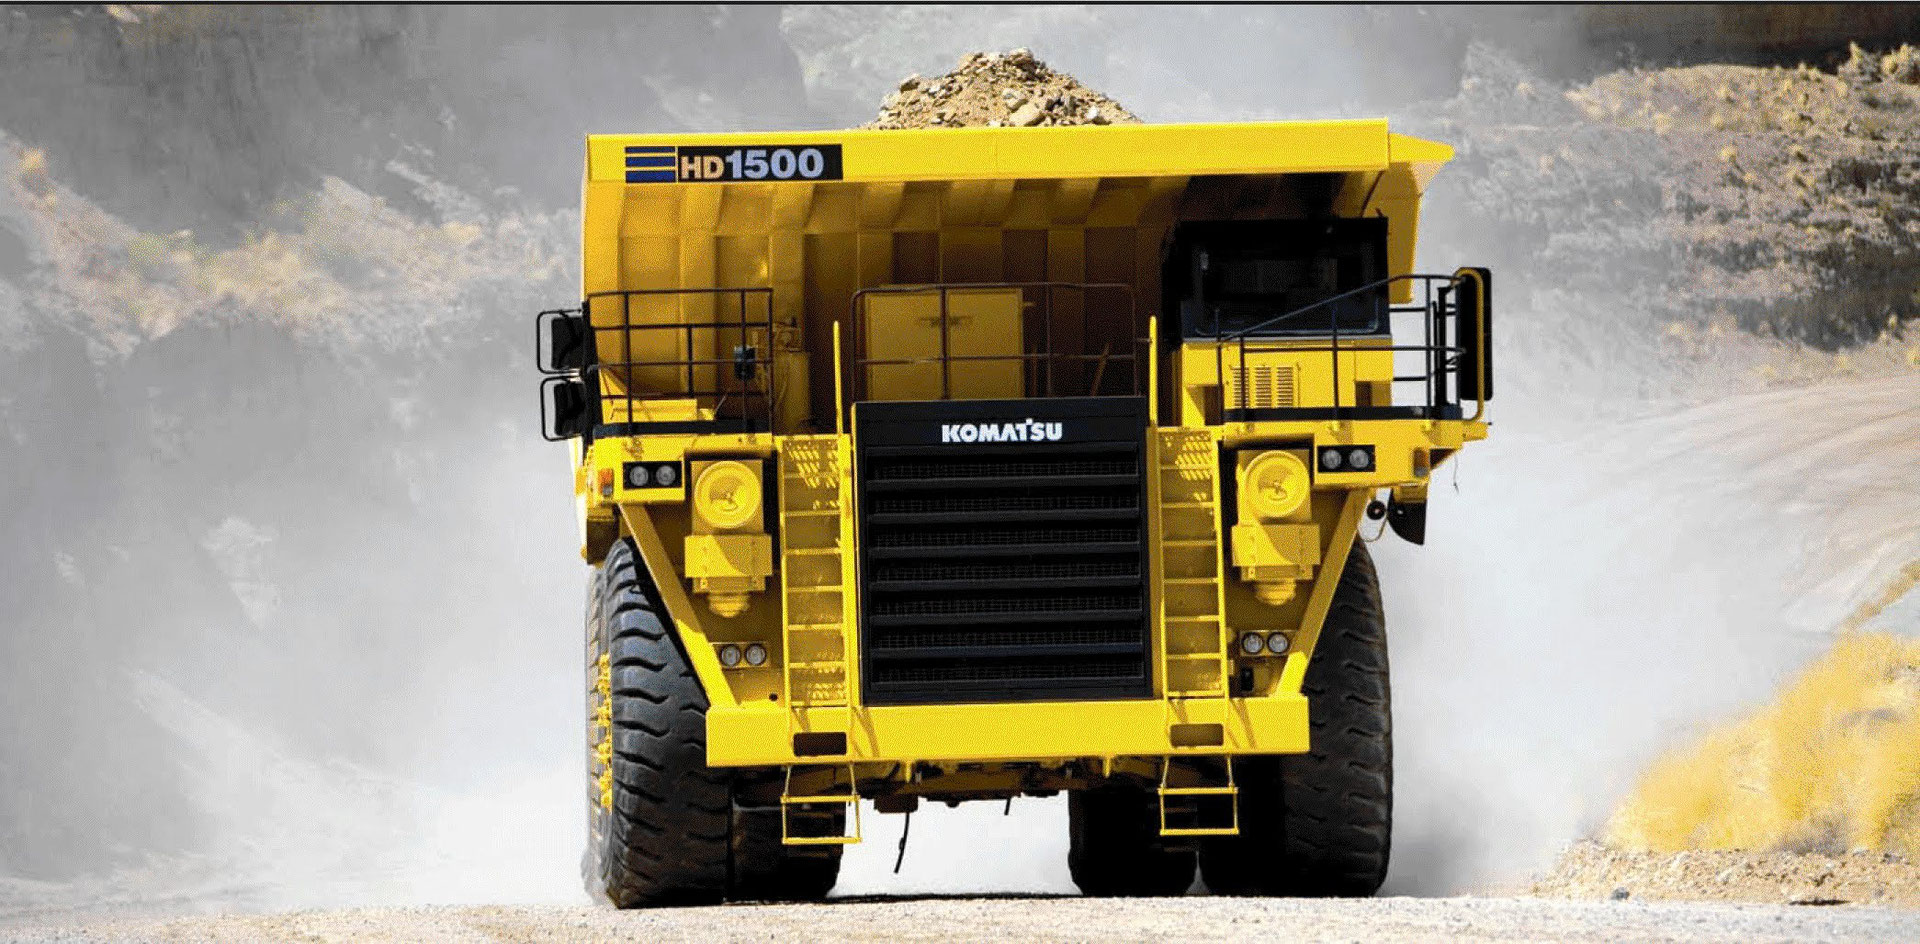 279 Komatsu Service Manuals Free Download